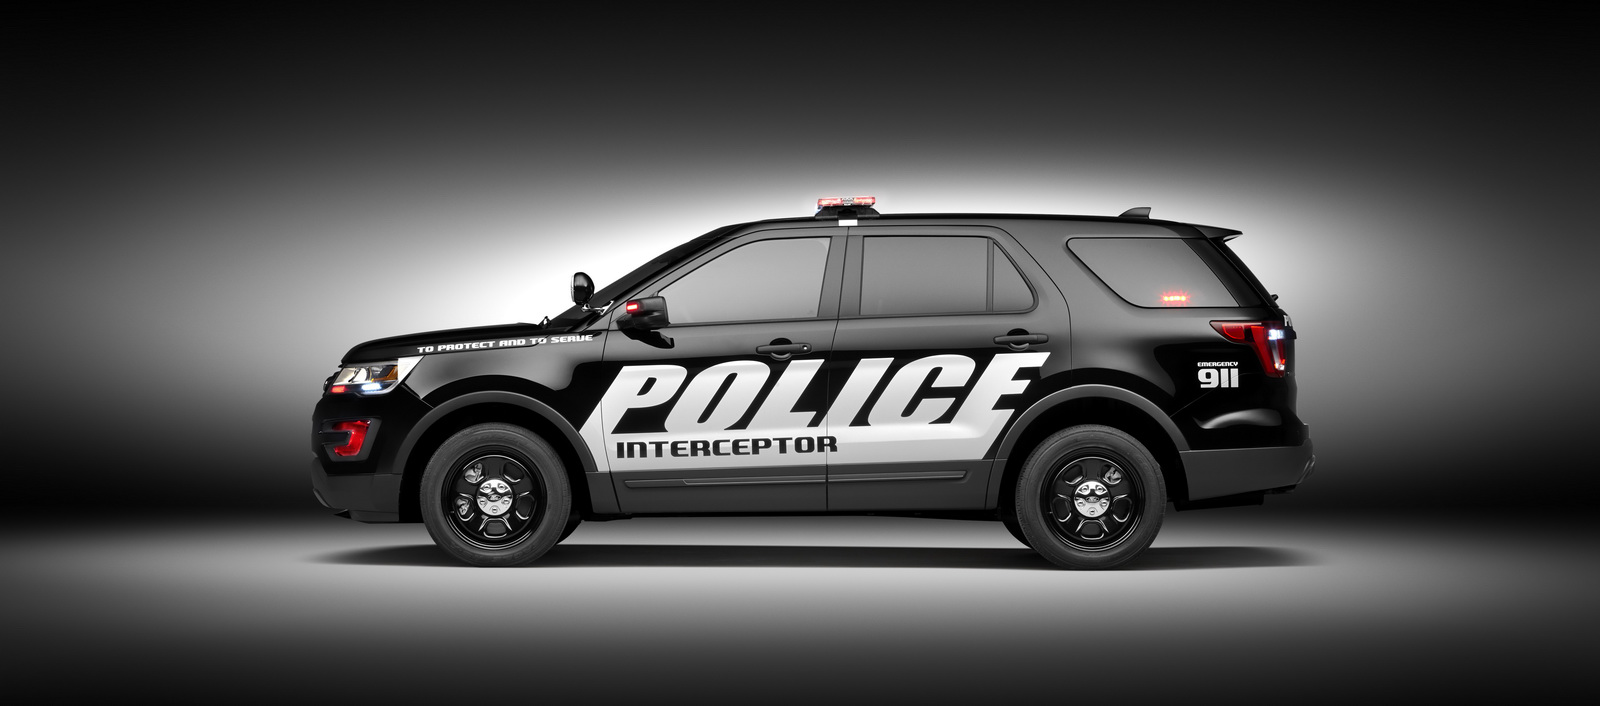 Creative The 2016 Ford Police Interceptor Utility Is Ready To Hit The Streets